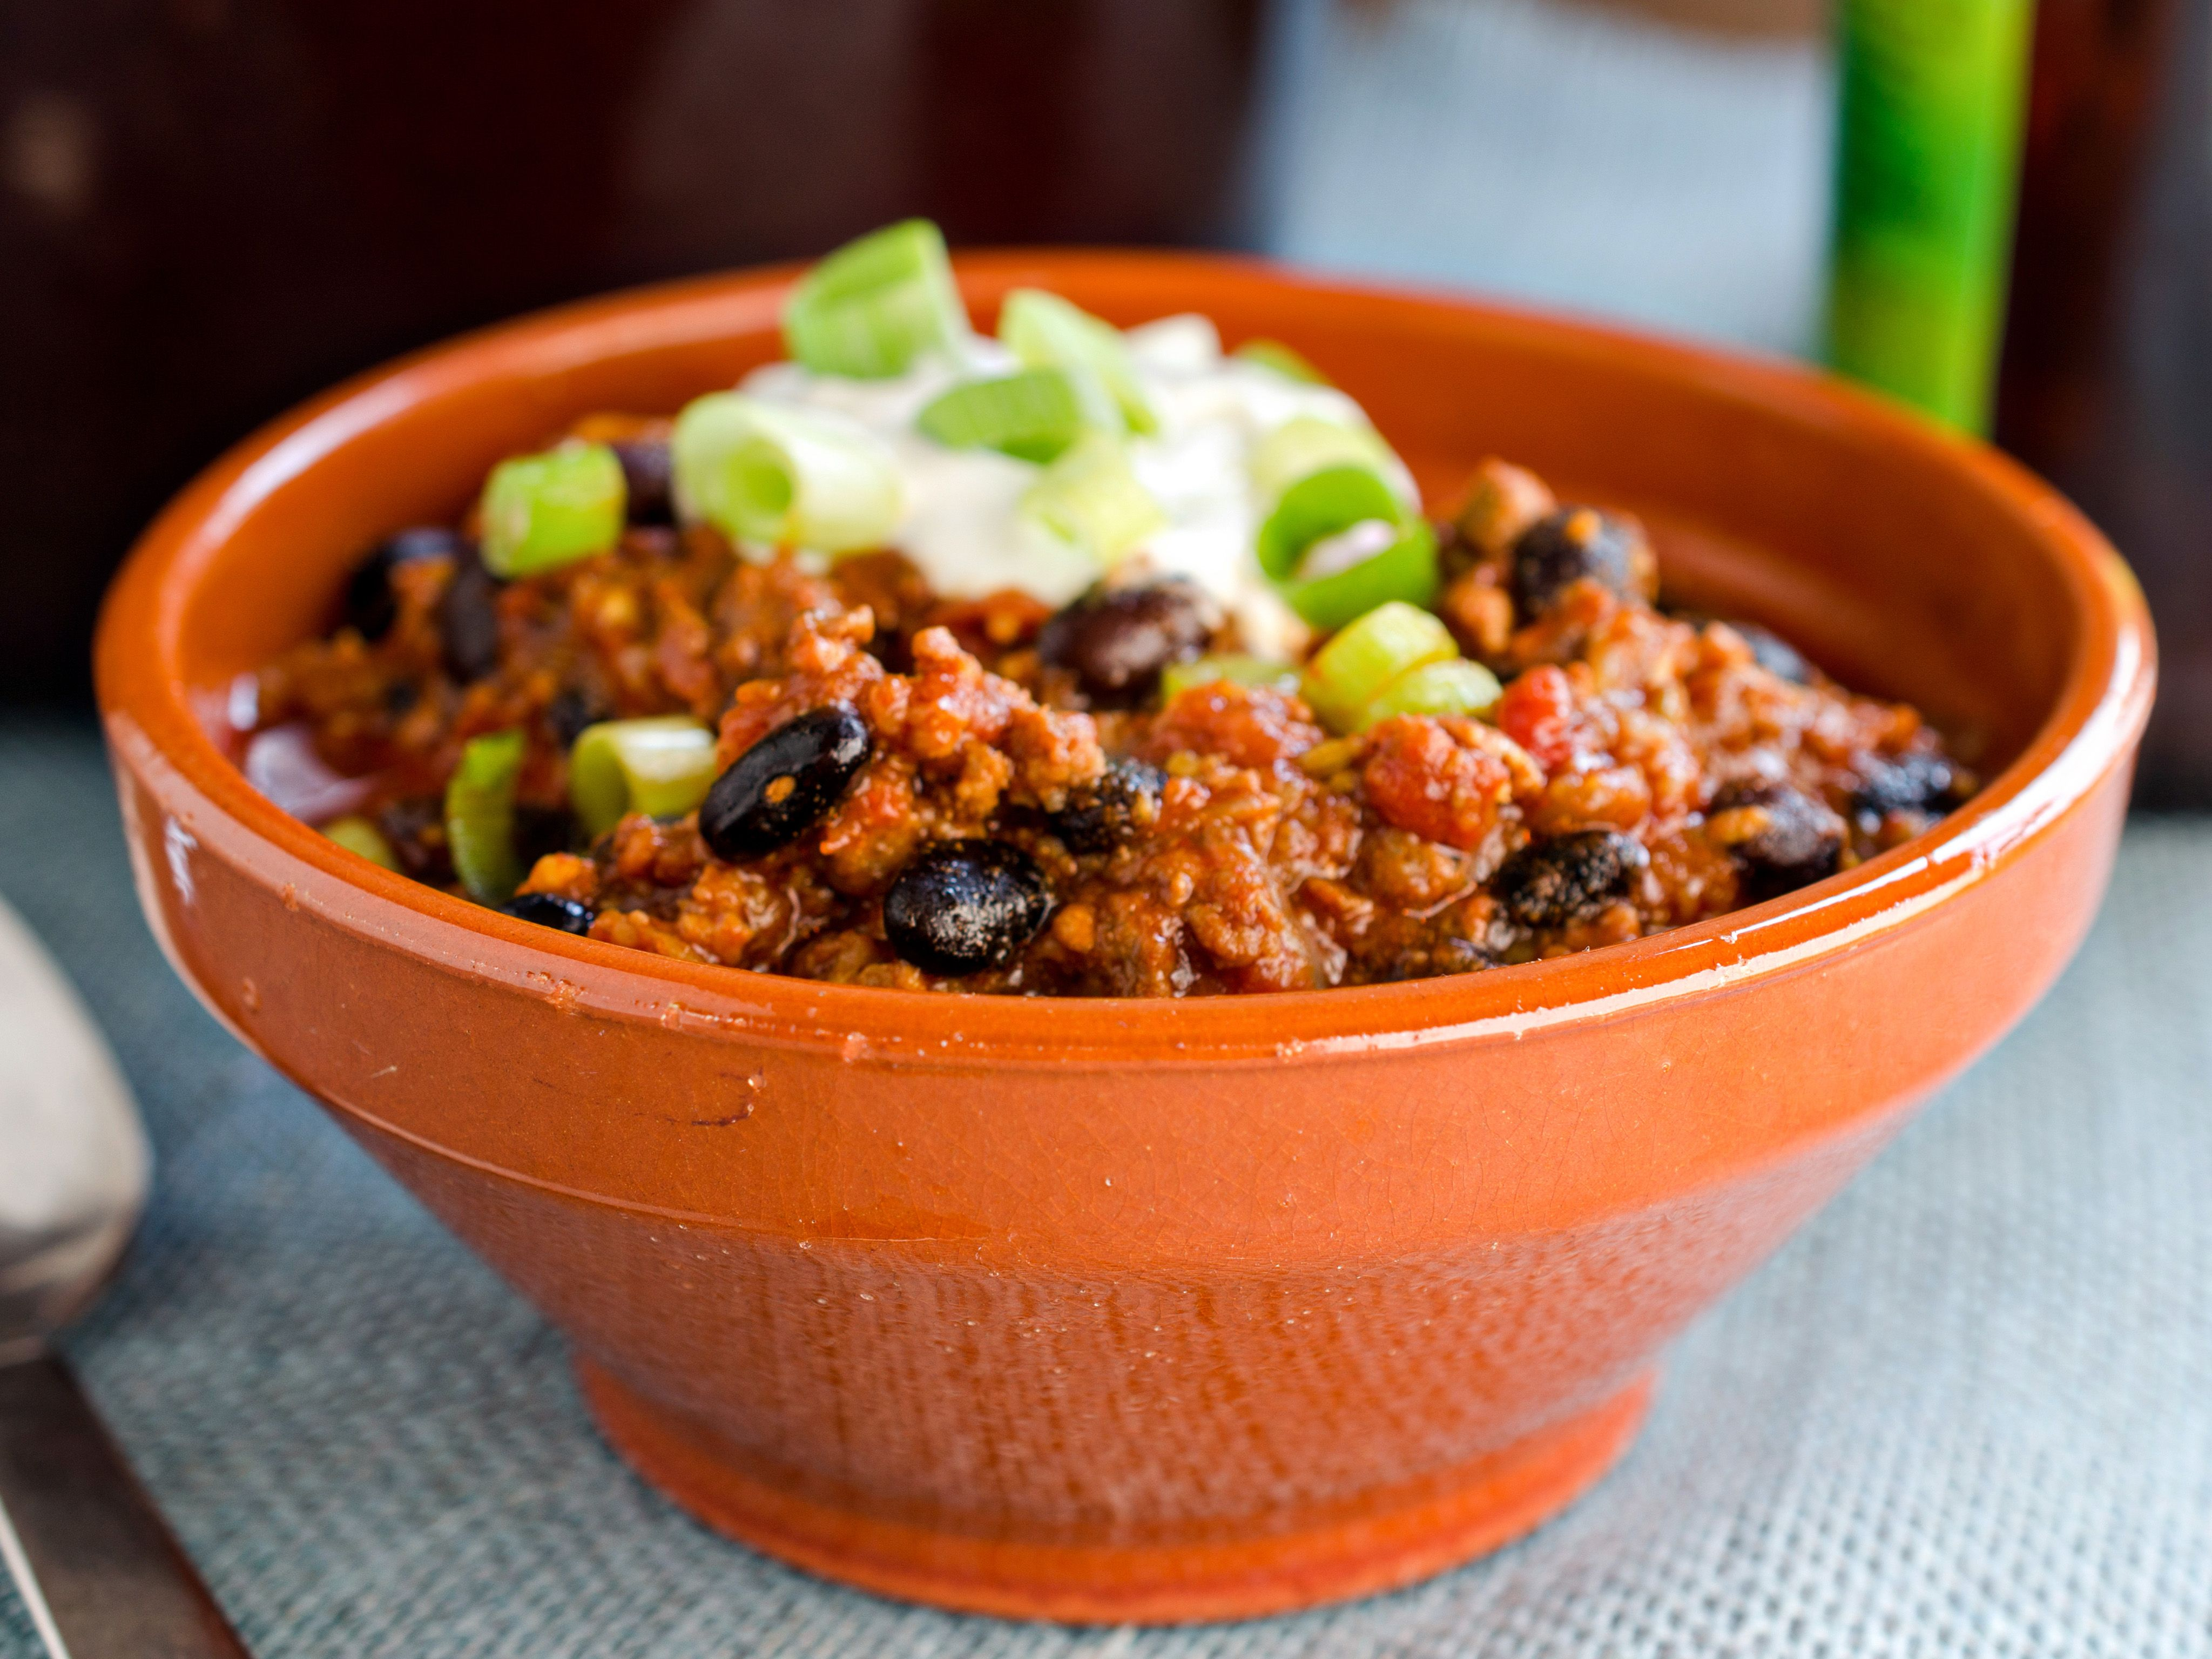 Tailgate chili recipe tailgate chili recipe chili recipes and tailgate chili recipe tailgate chili recipe chili recipes and tailgating forumfinder Image collections